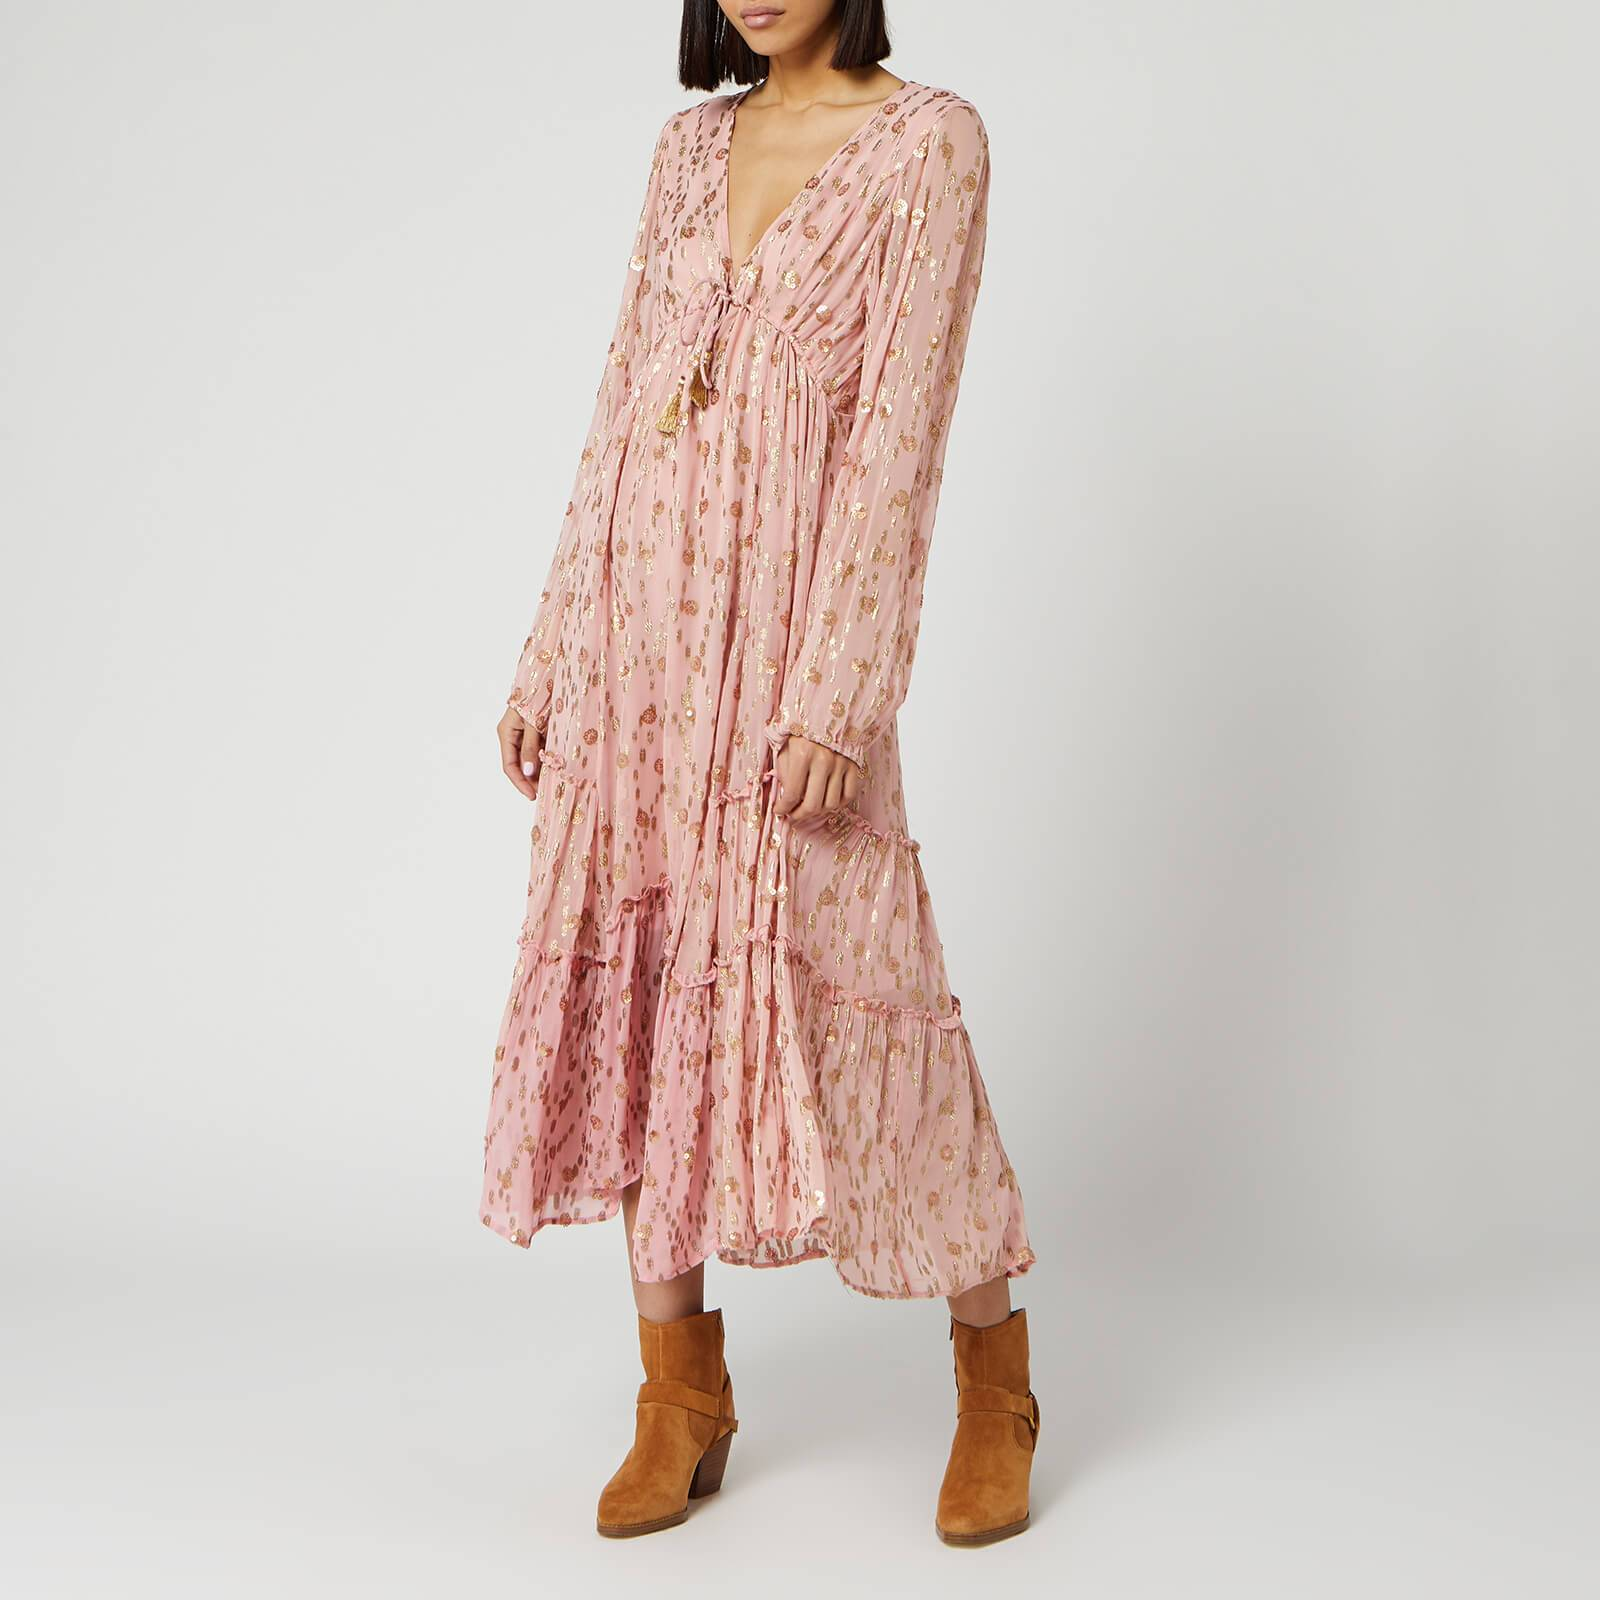 Free People Women's Celina Maxi Dress - Pink - M